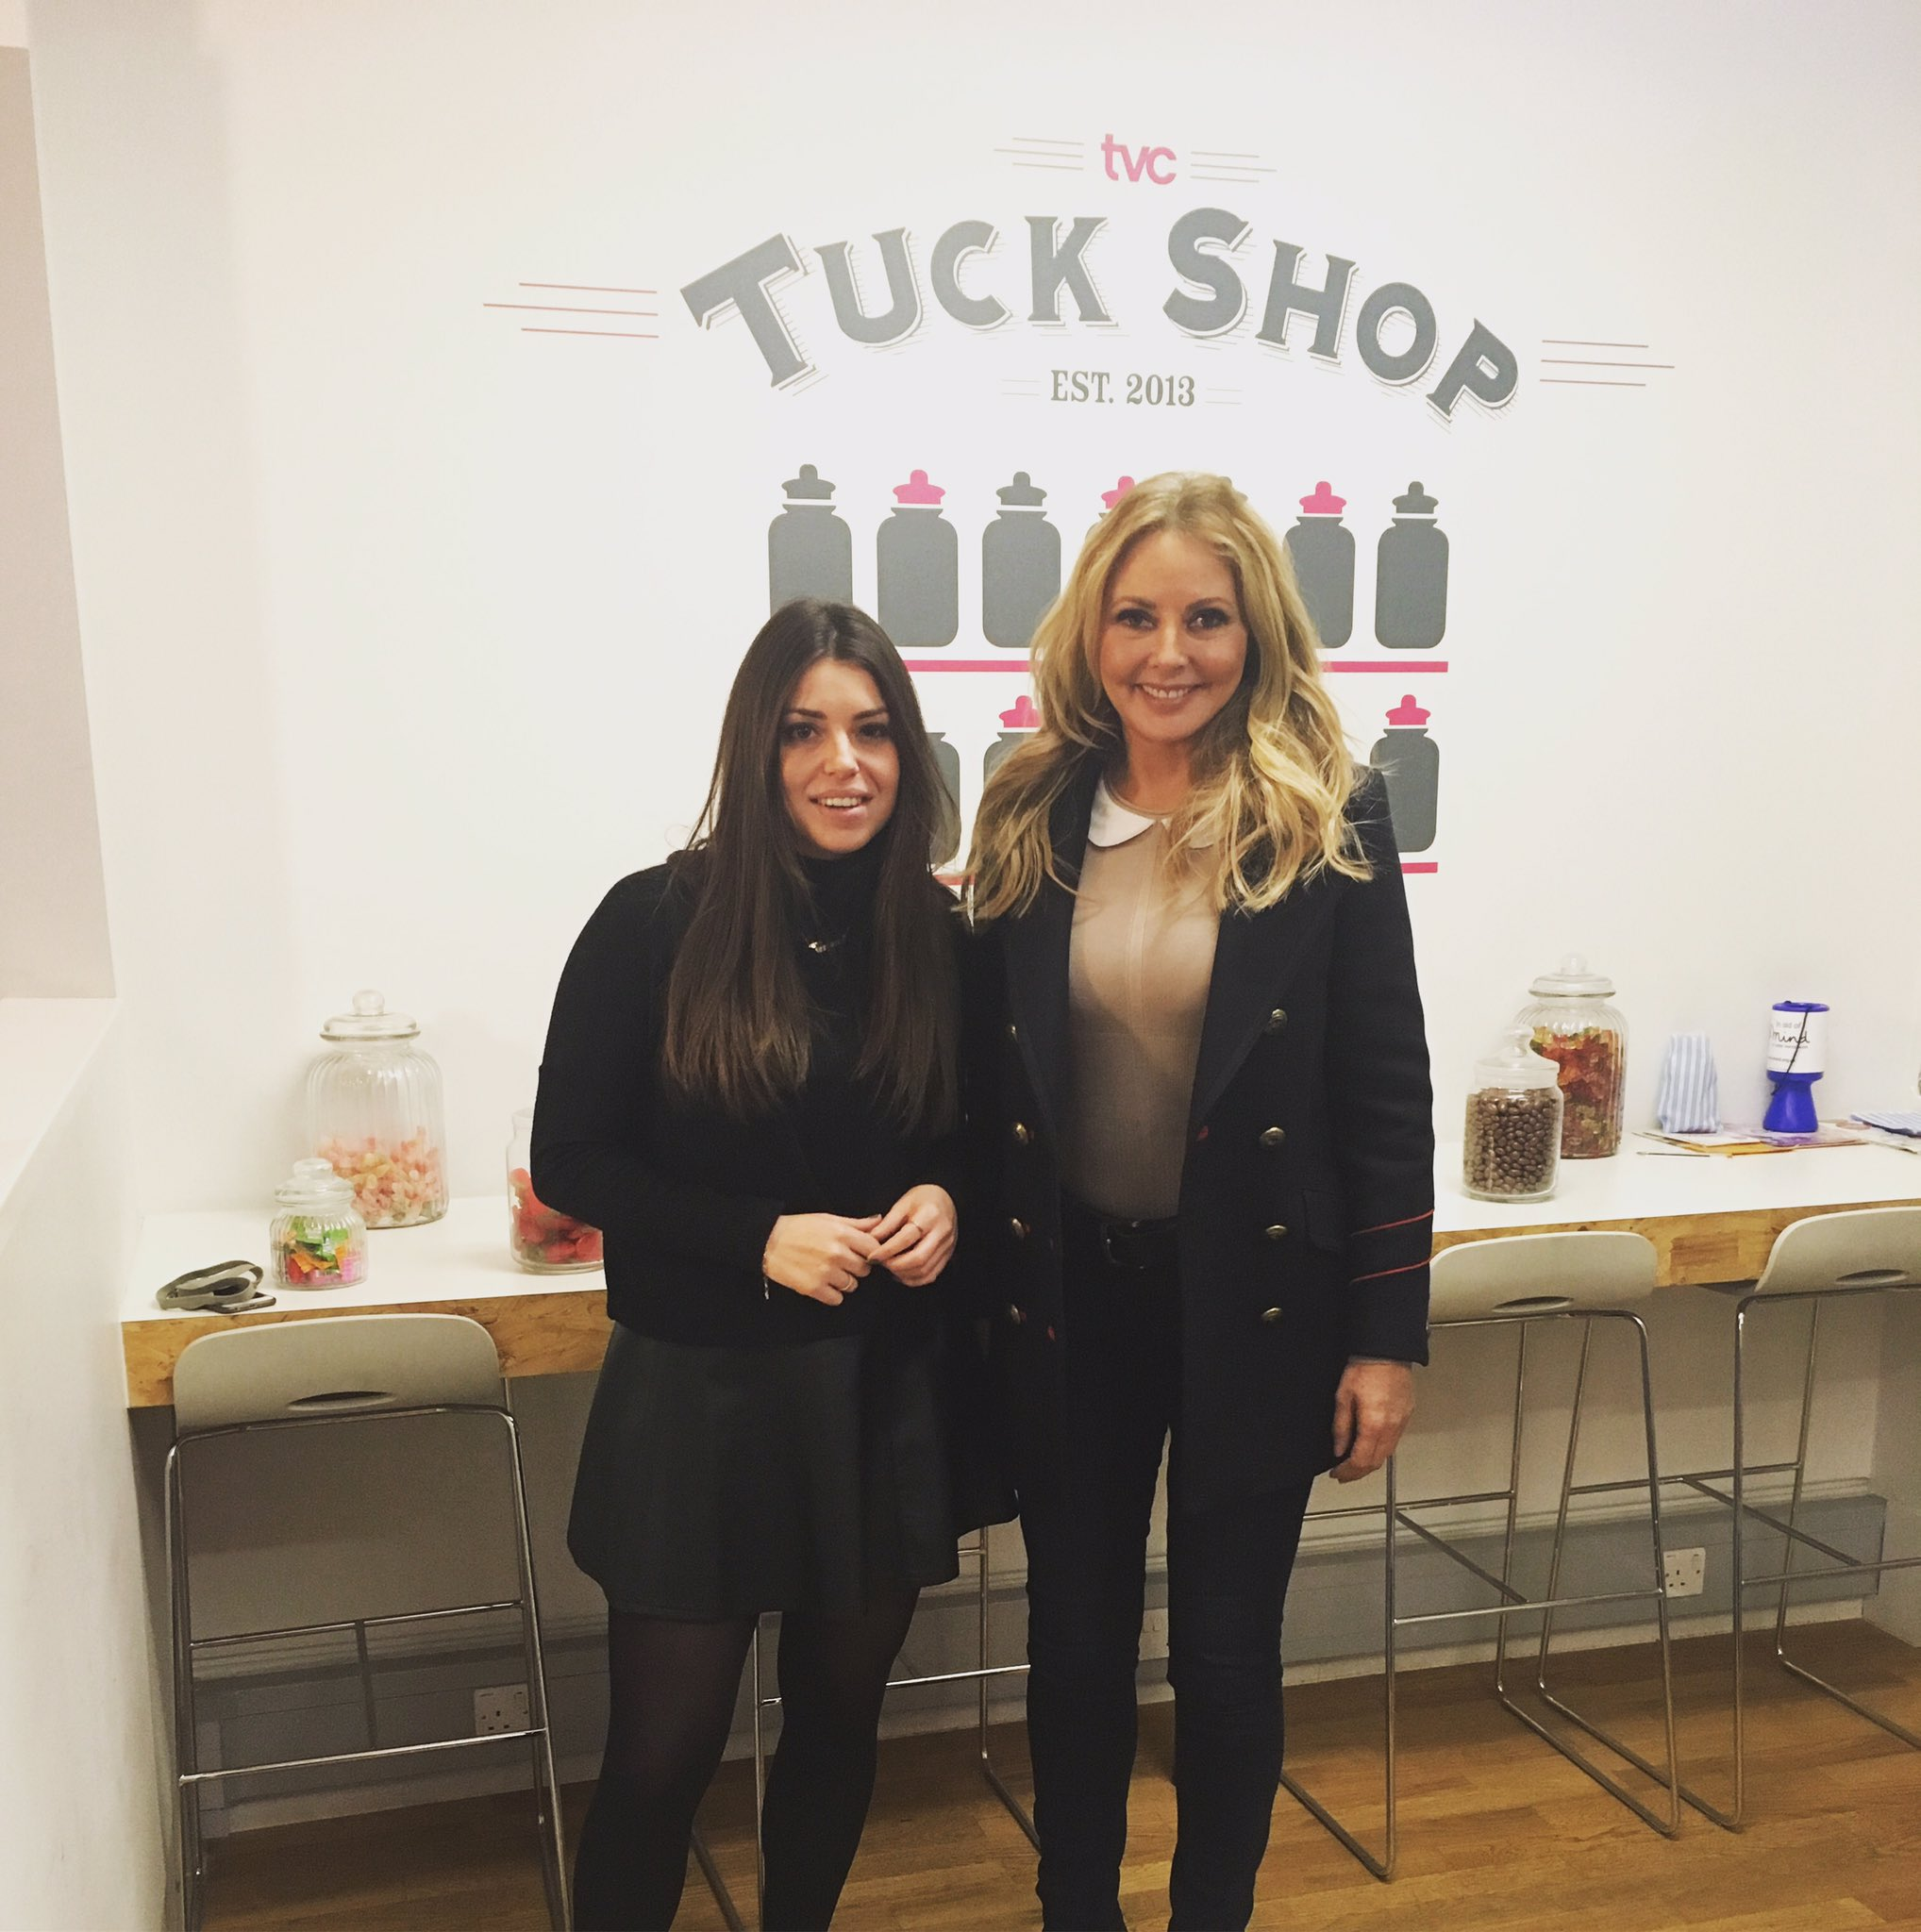 RT @TVCGroup: Great to have @carolvorders in the office today helping us beat the January blues this #blueMonday 💙 https://t.co/la179w8ljD